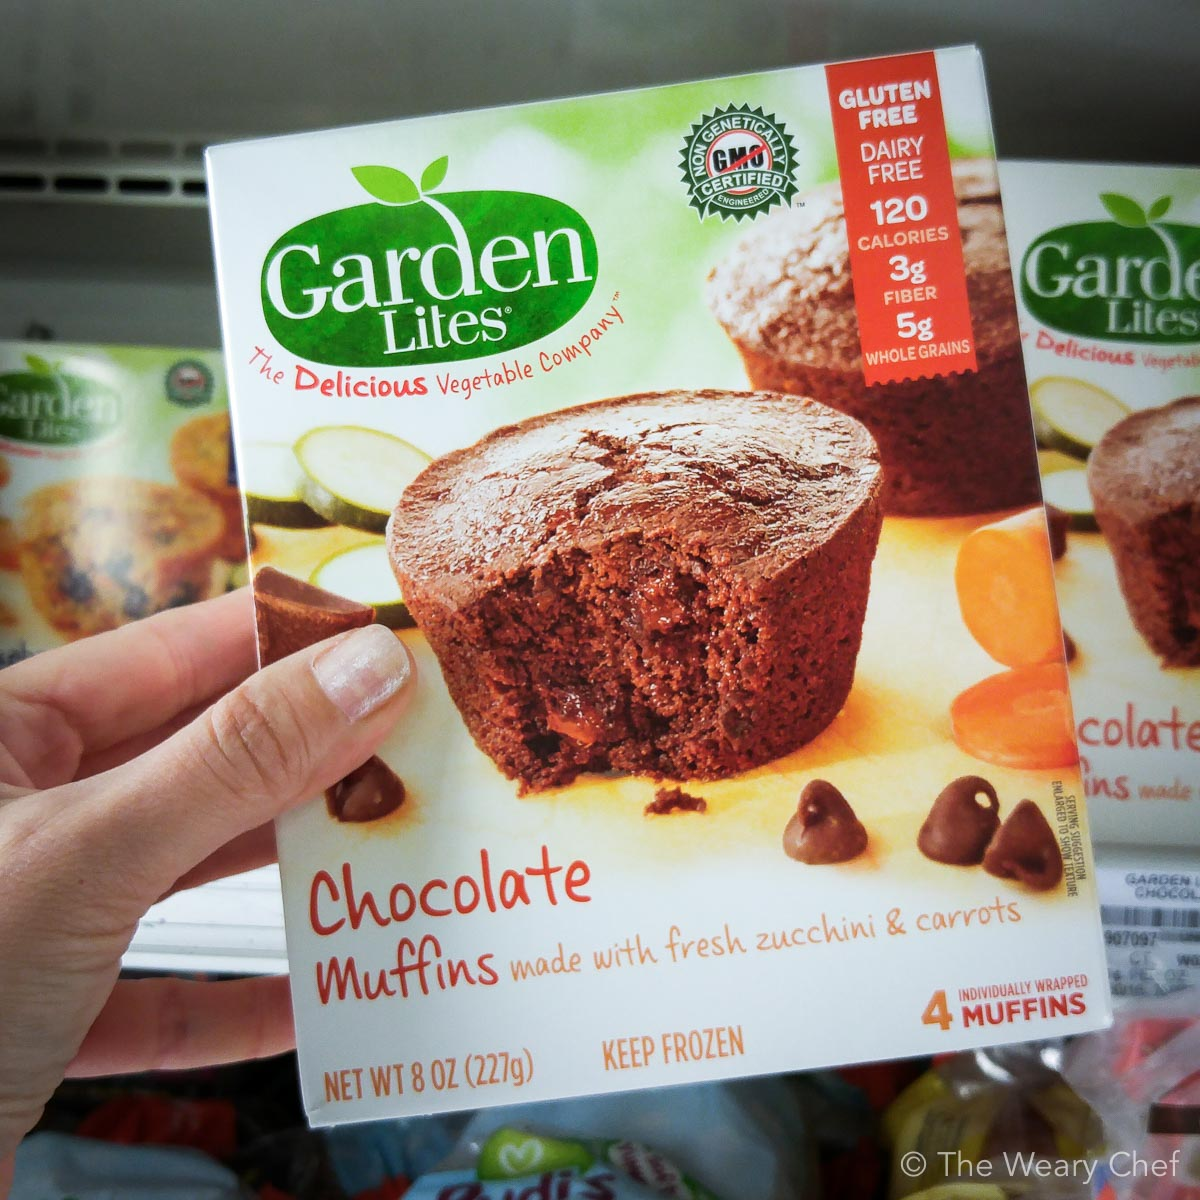 Look for @GardenLites muffins and savory items in your grocery freezer section. They are loaded with veggies and taste great too! #HookedOnVeggies